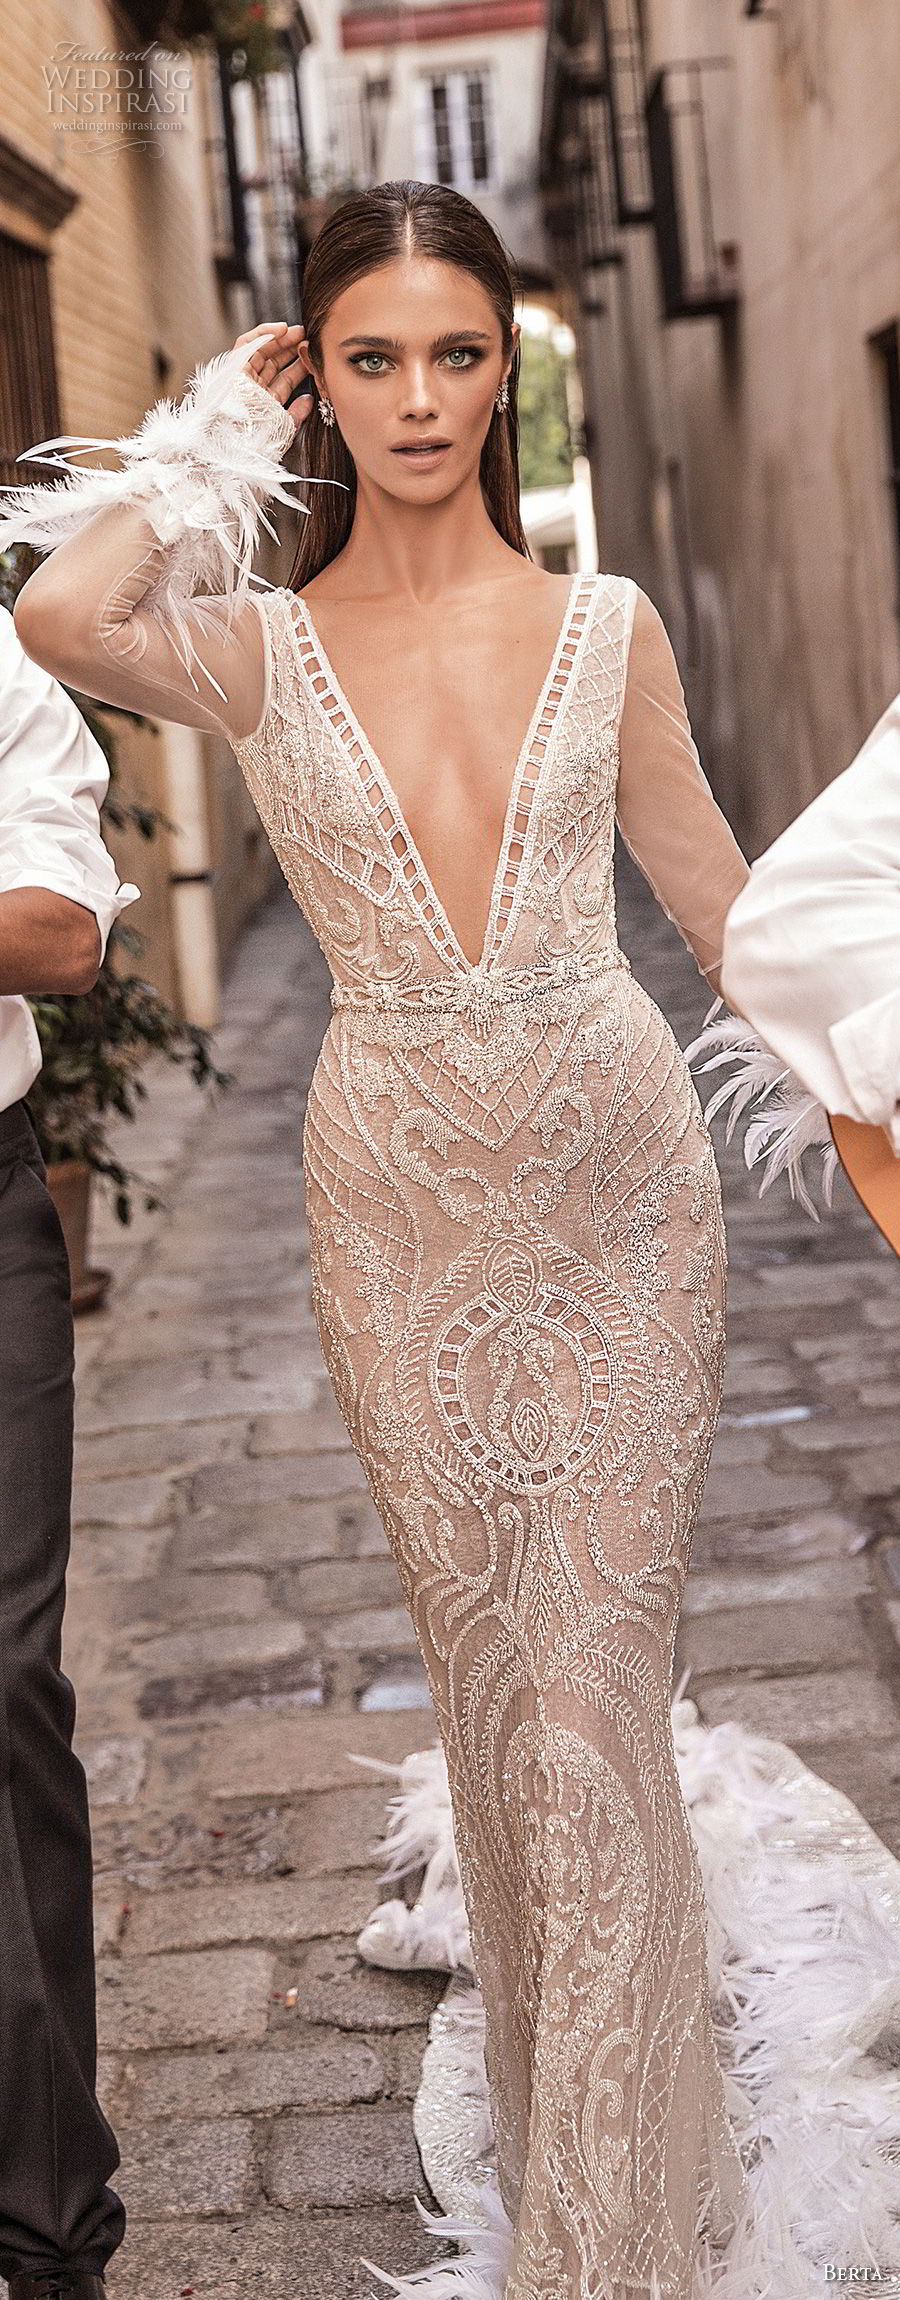 berta fall 2018 bridal long sleeves deep v neck full embellishment elegant glamorous sheath wedding dress open v back chapel train (24) mv